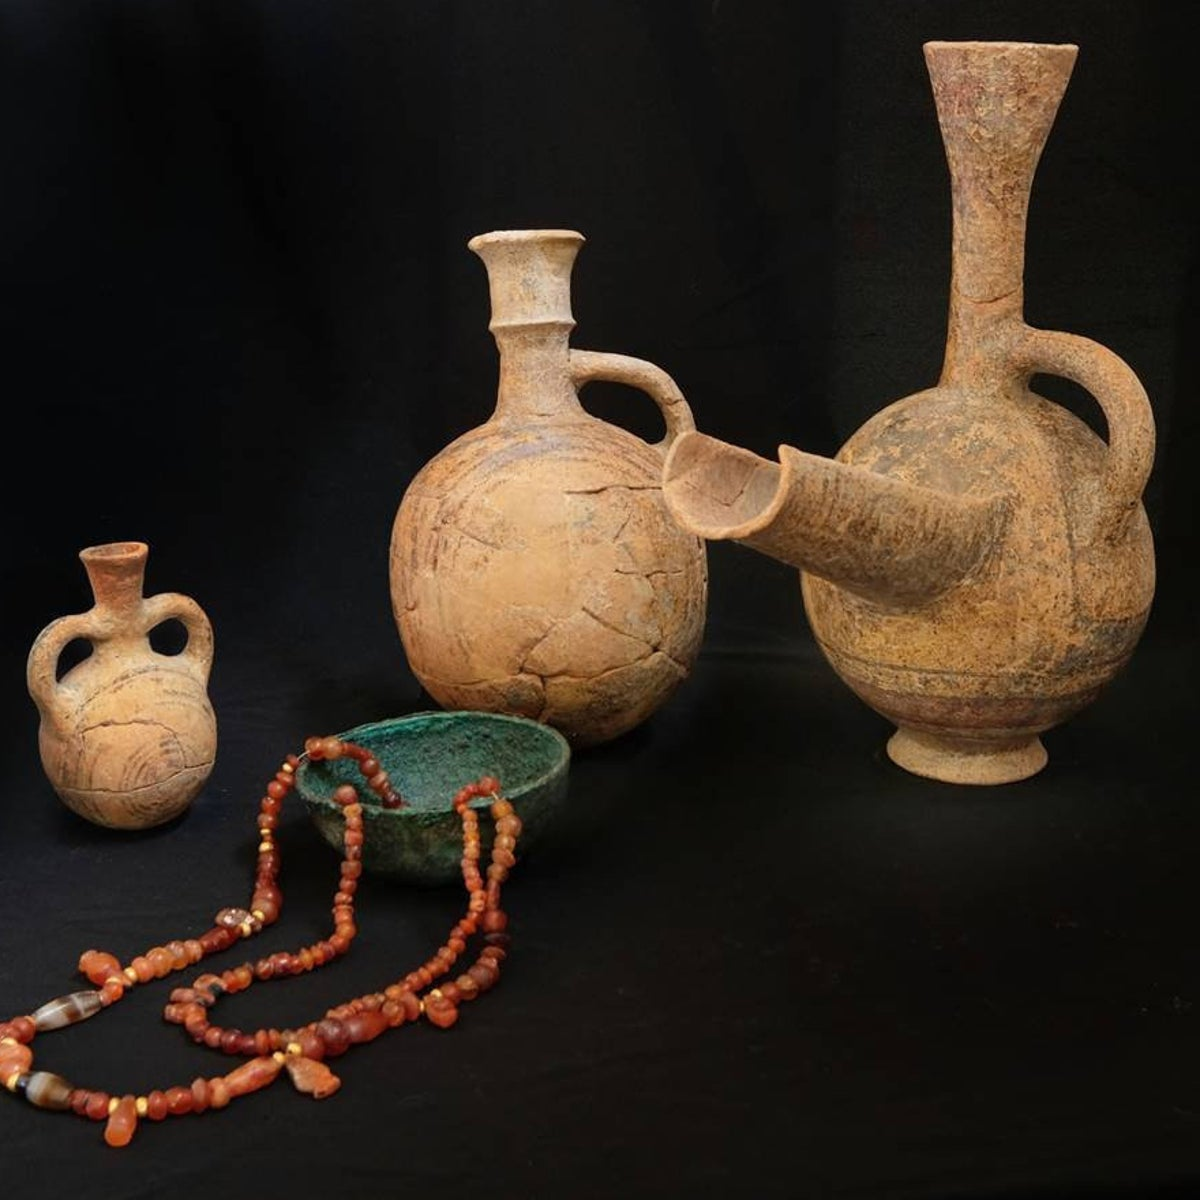 Cypriot and Phoenician pottery with metal bowl and beads found with three bodies in the Phoenician grave at Achziv